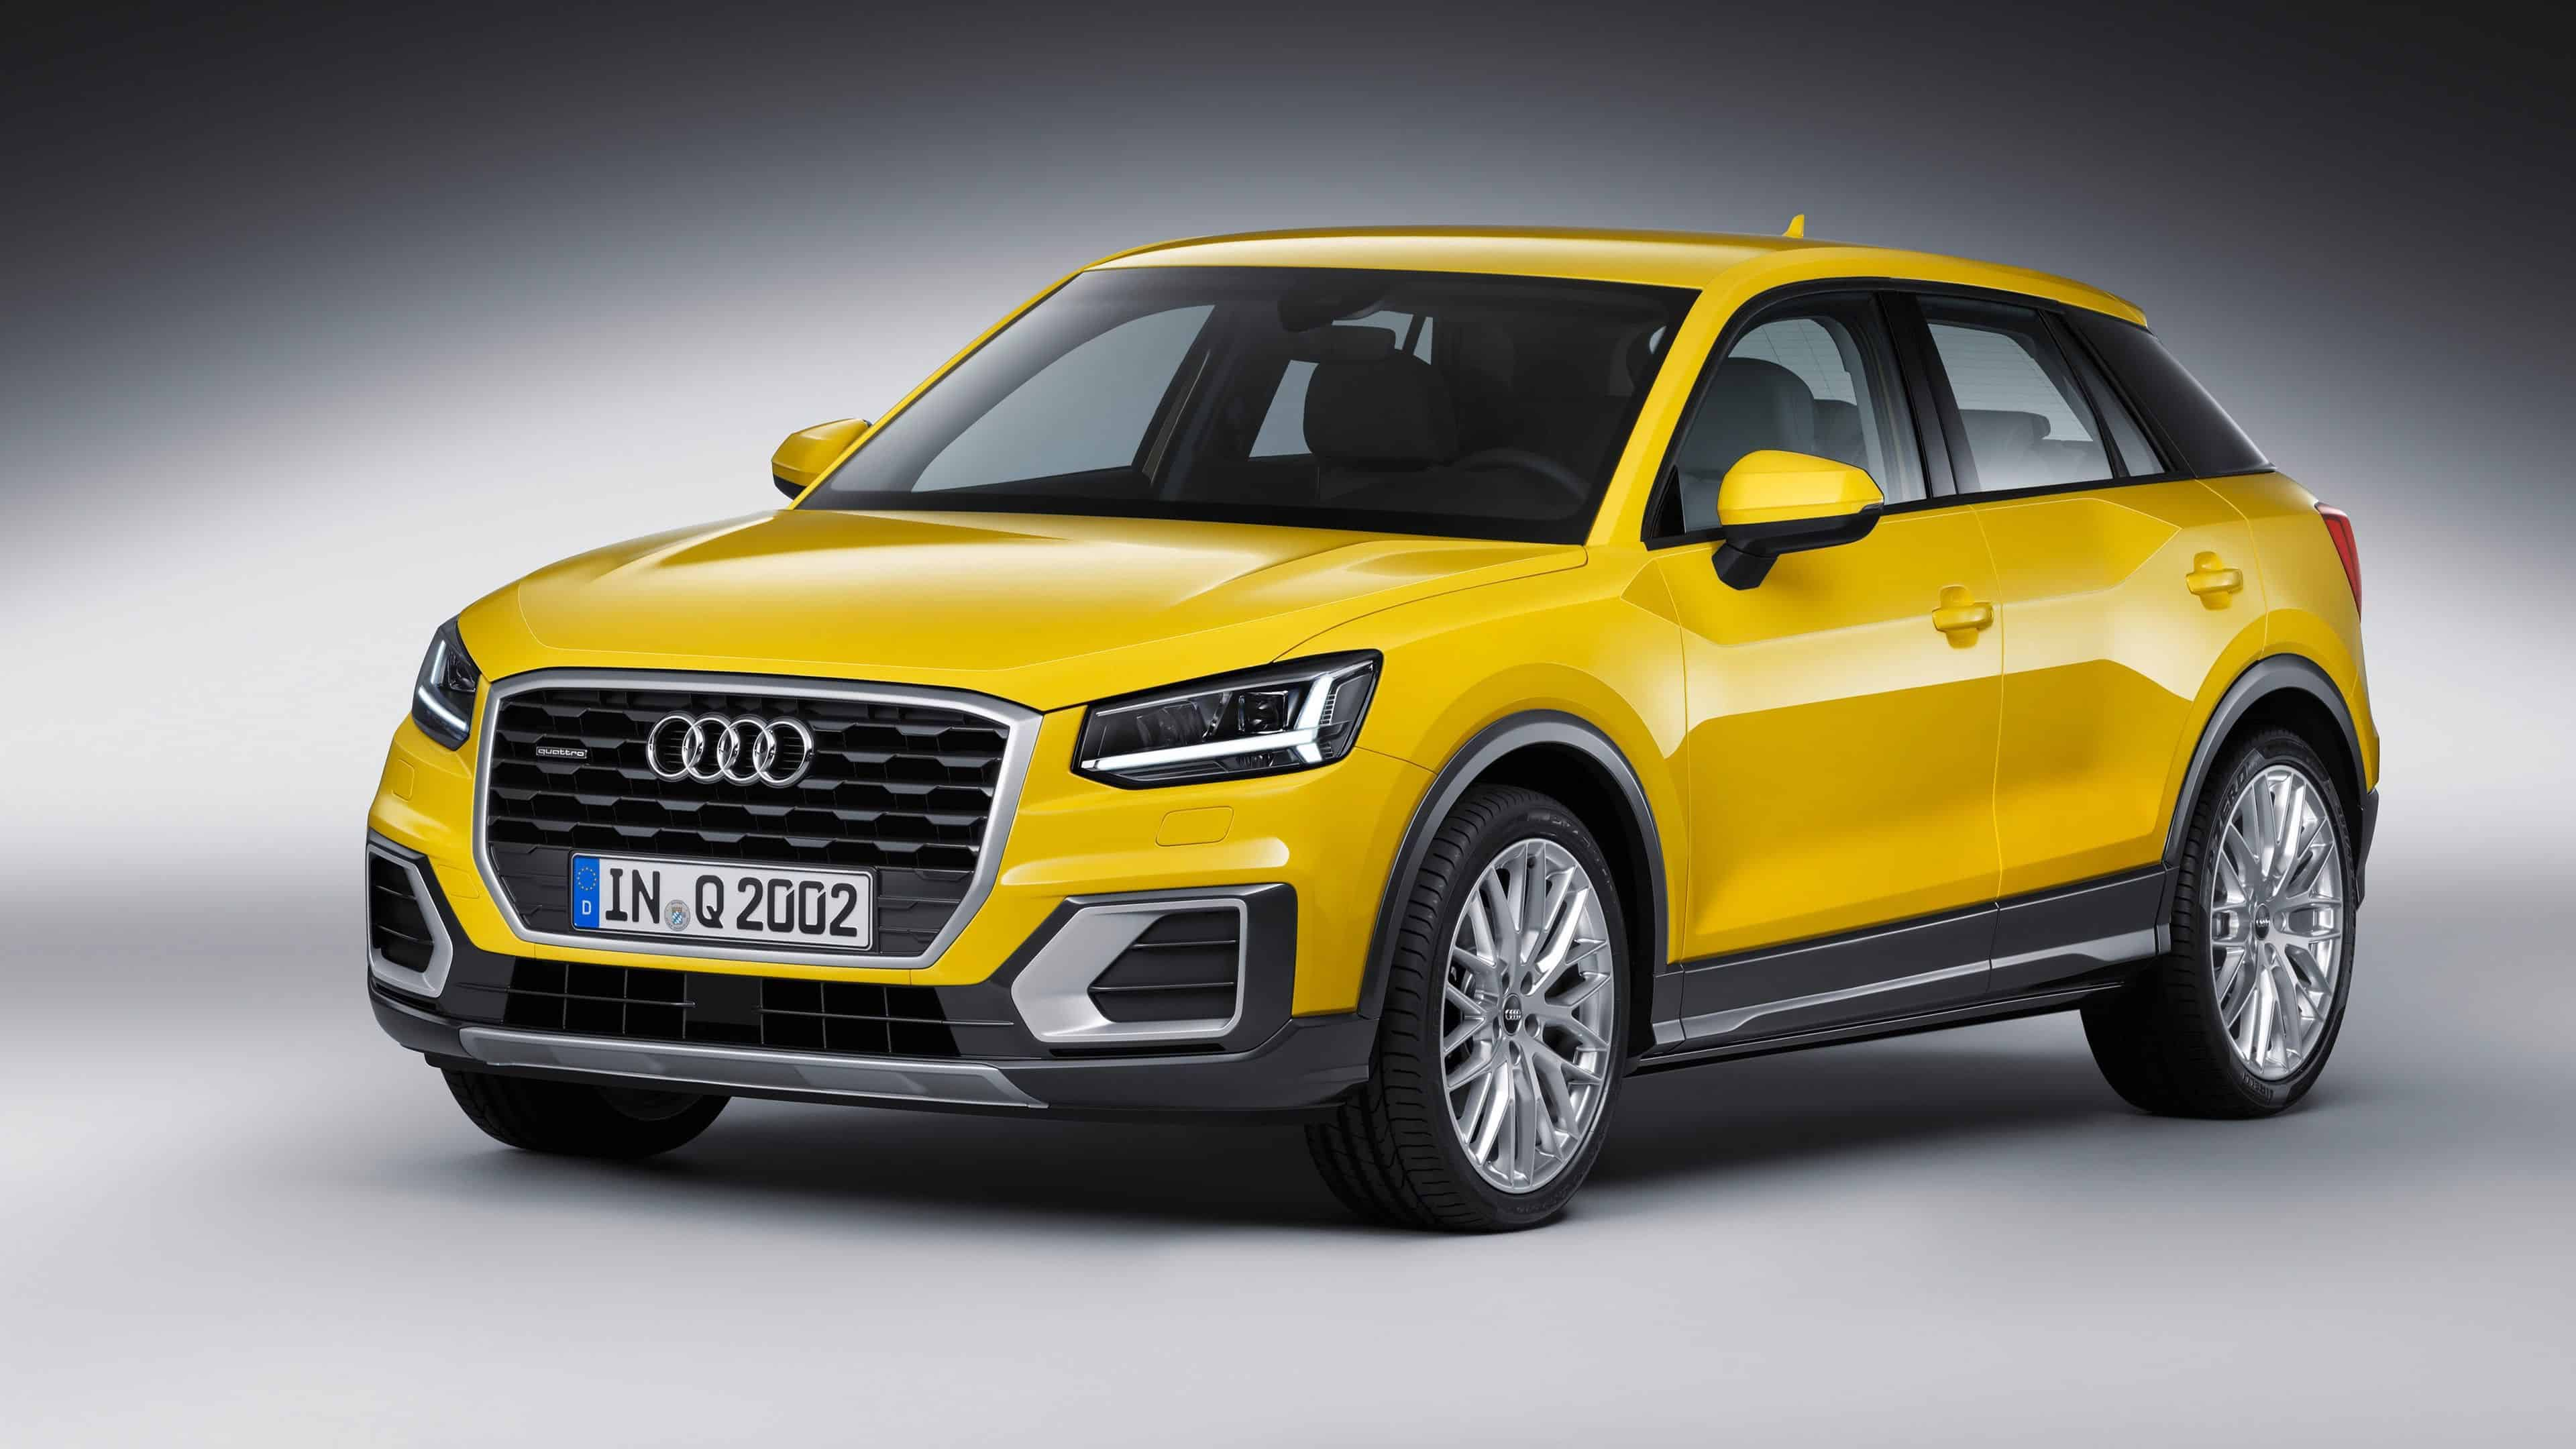 audi q2 uhd 4k wallpaper